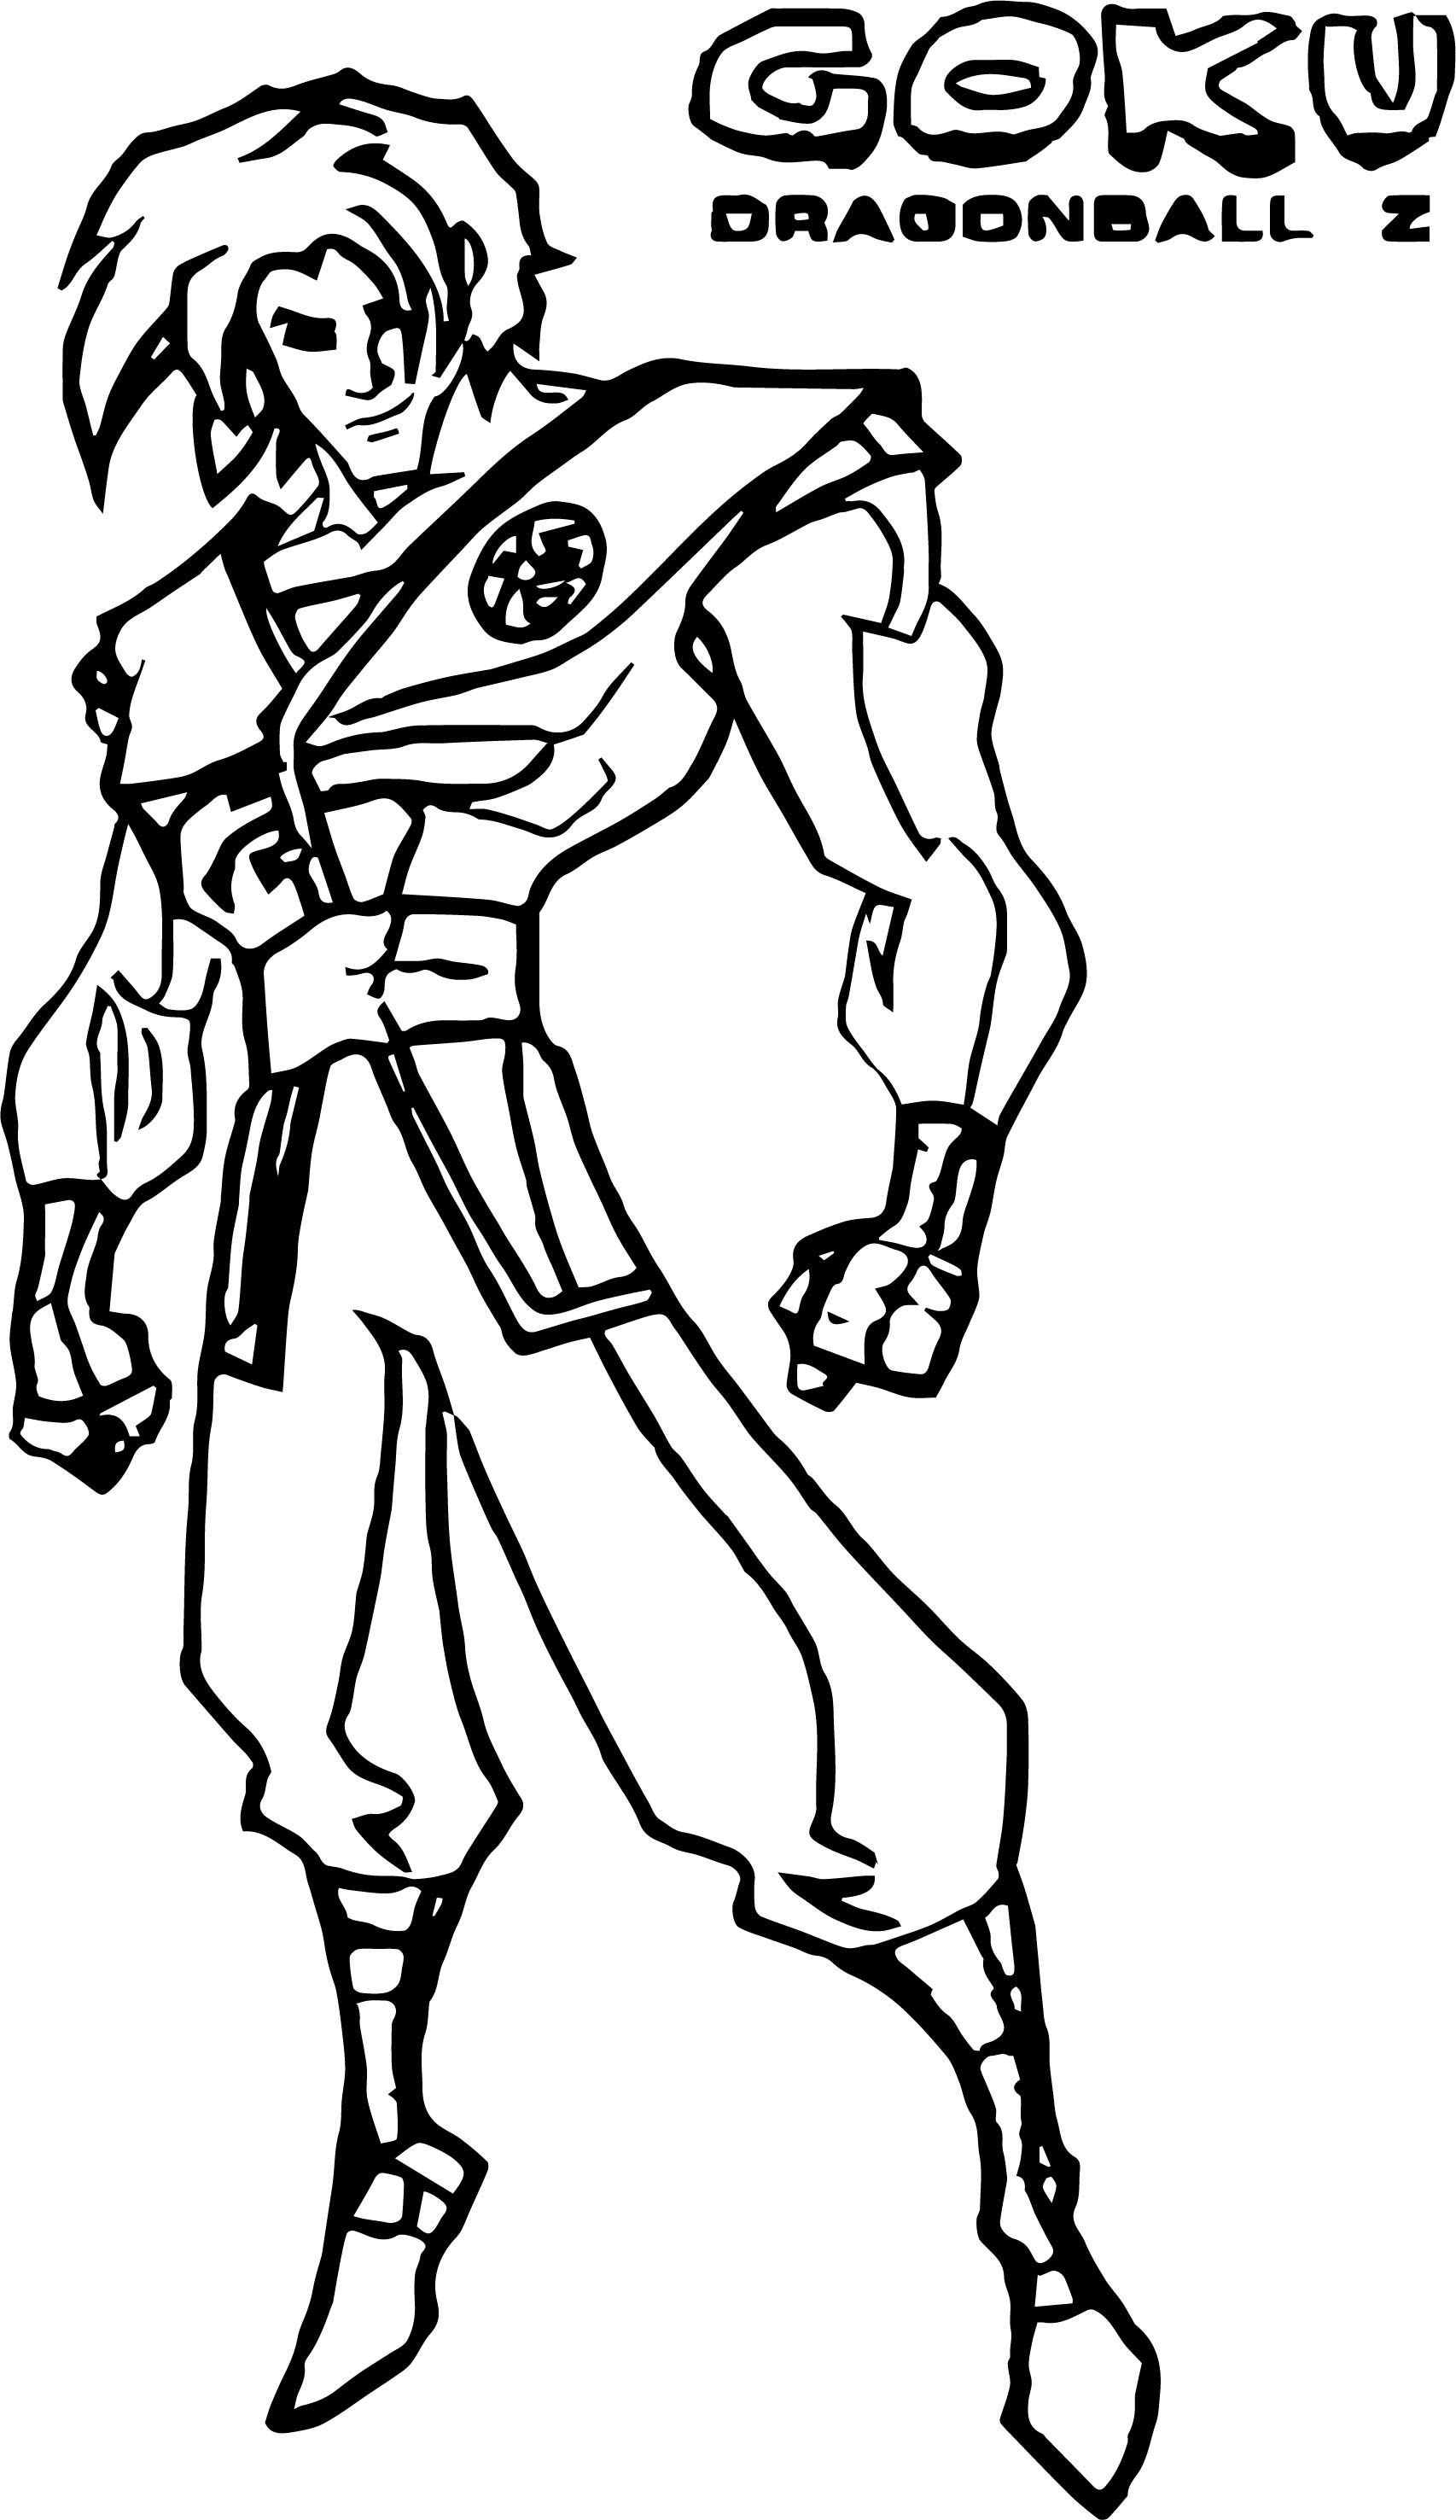 Color In Character Design : Character design goku coloring page wecoloringpage